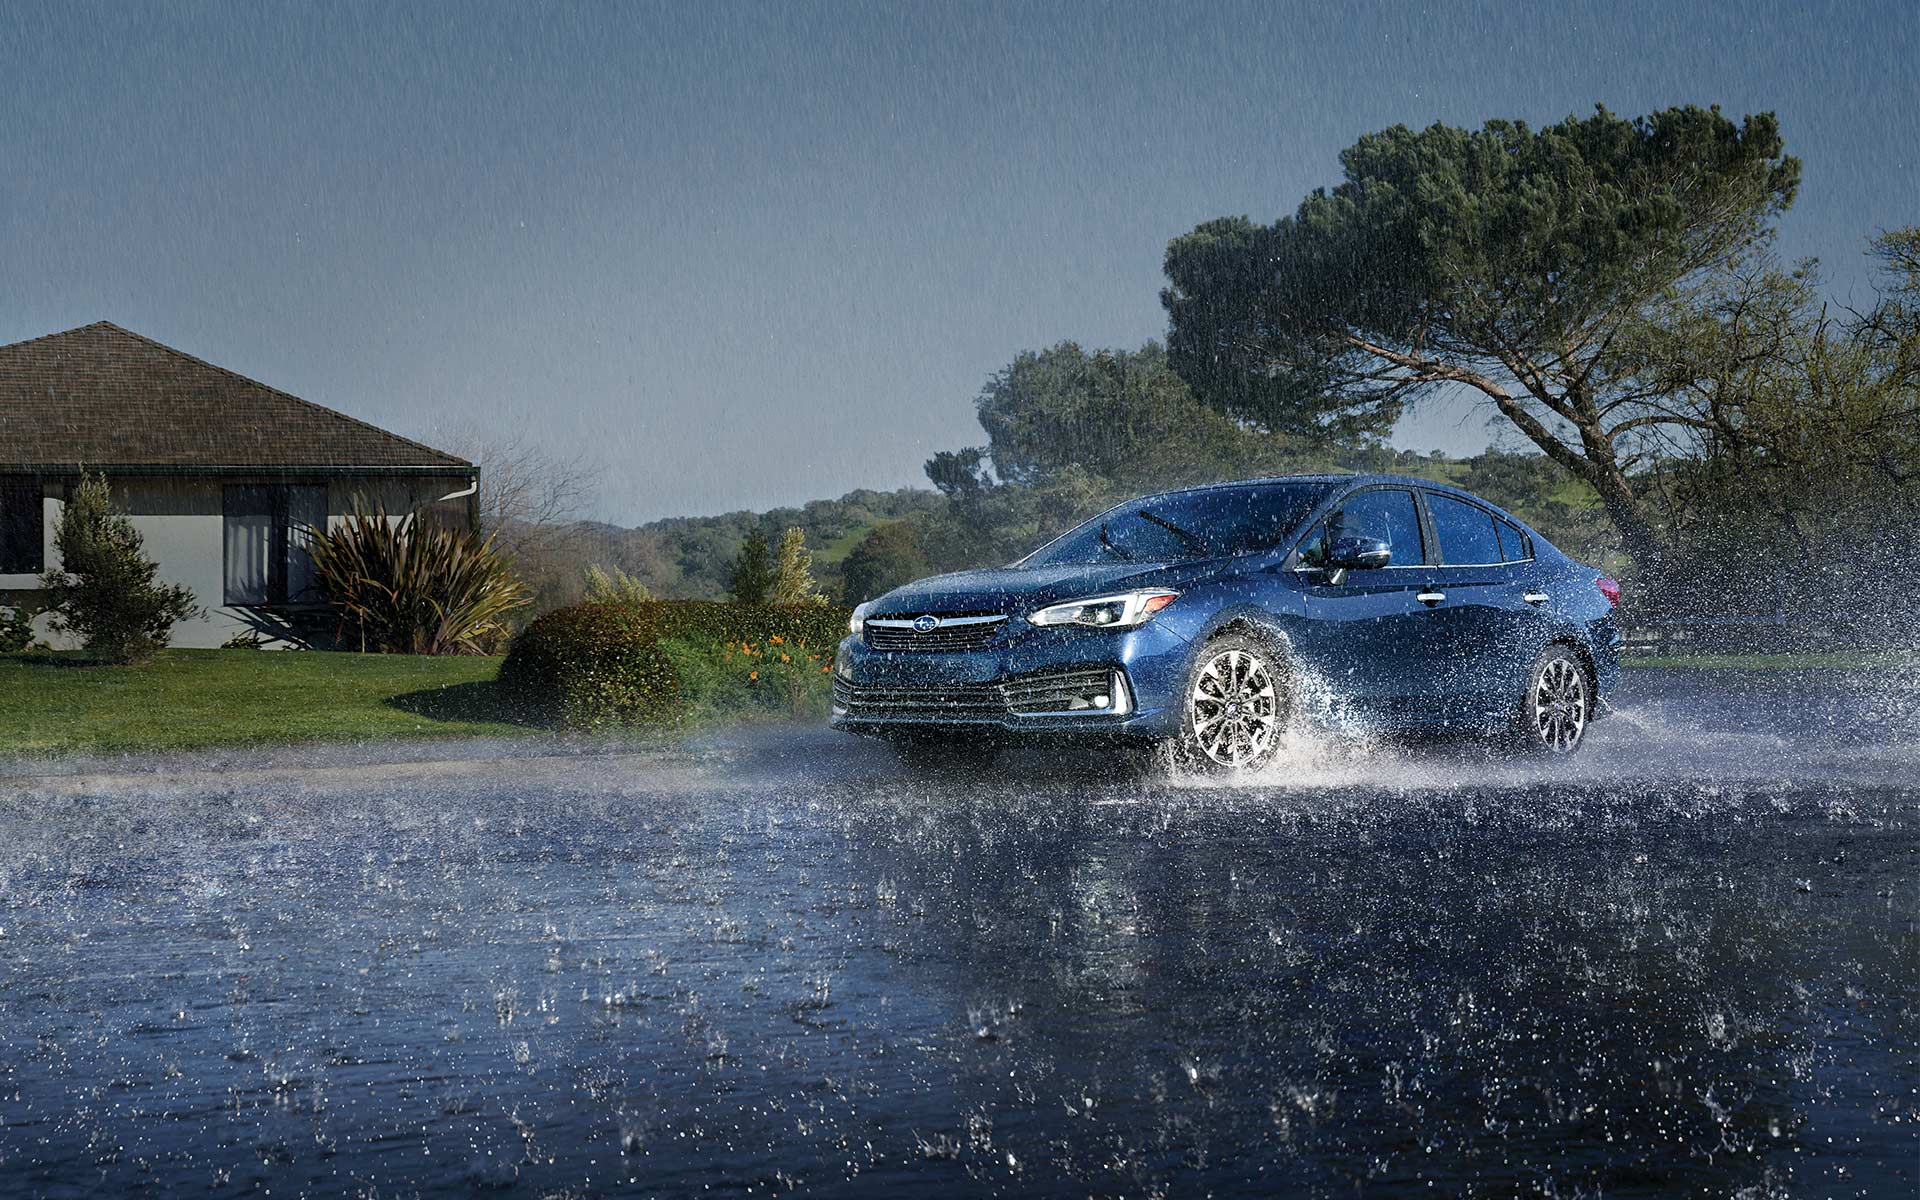 A 2020 Impreza sedan driving through a rain storm.